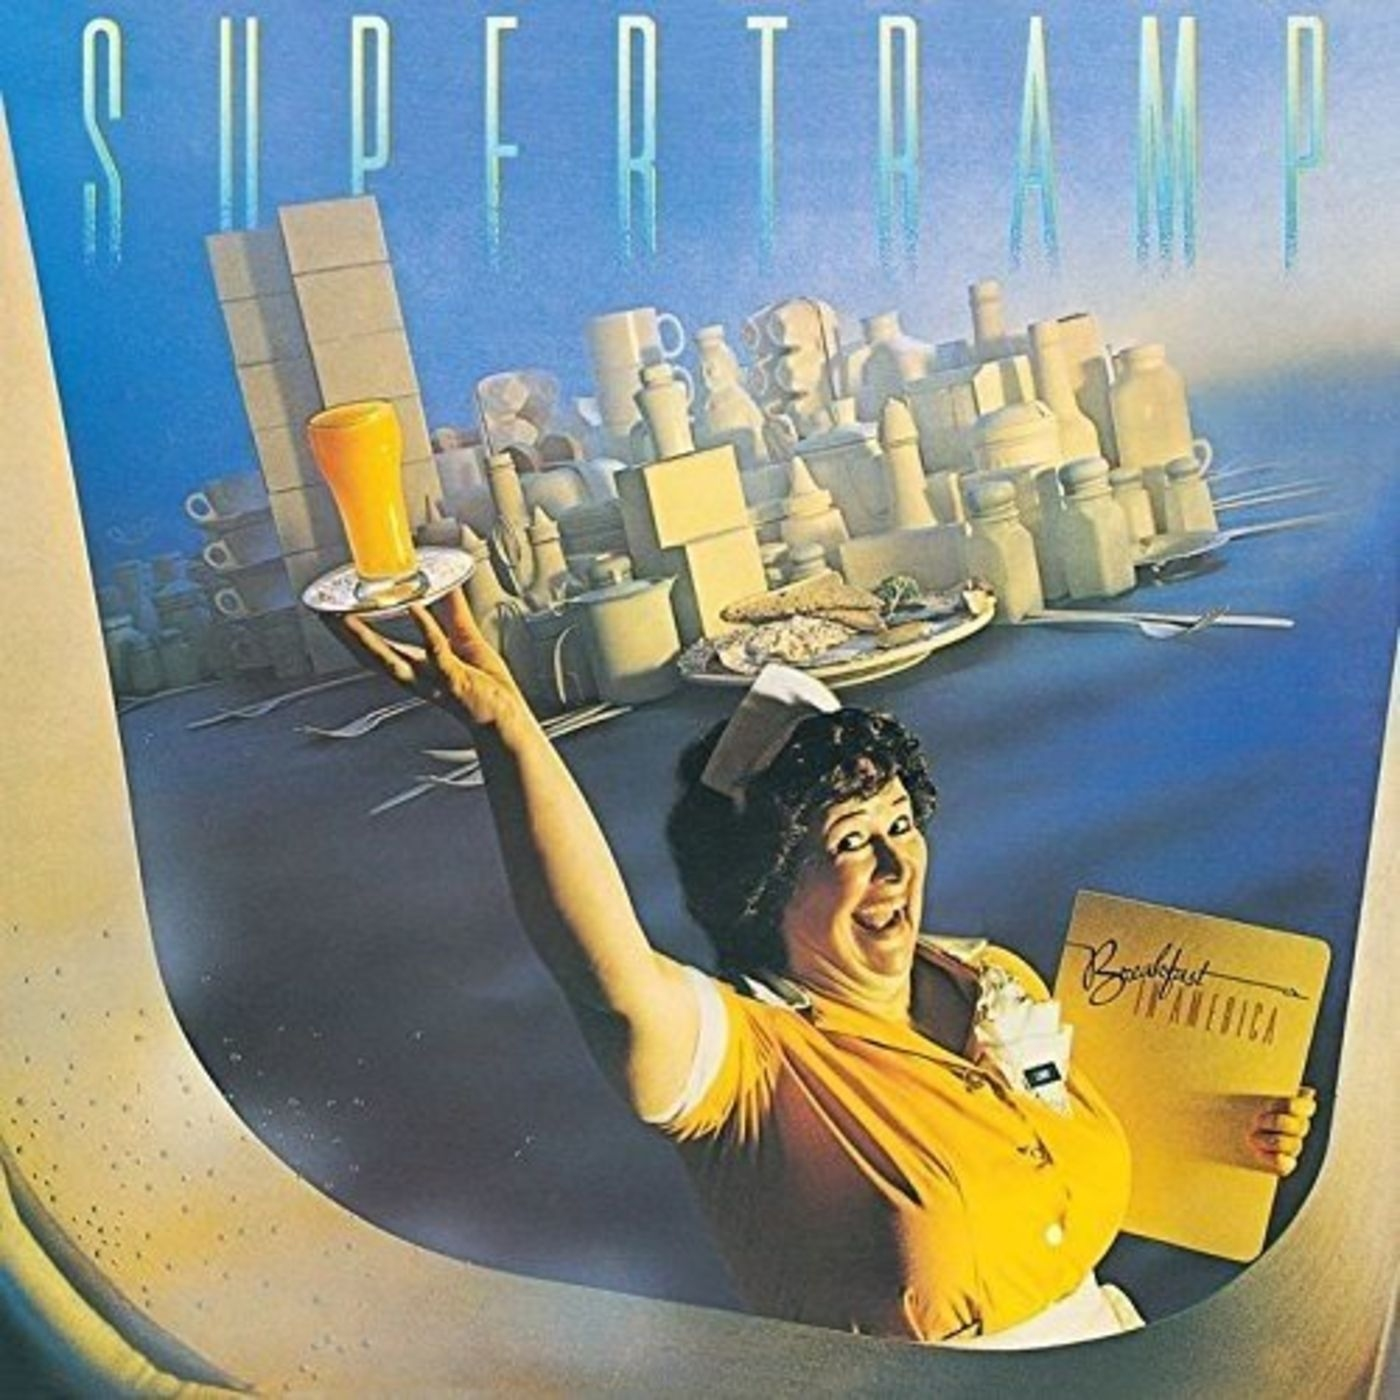 92910_supertramp_breakfast_in_america_a_und_m.011c6919